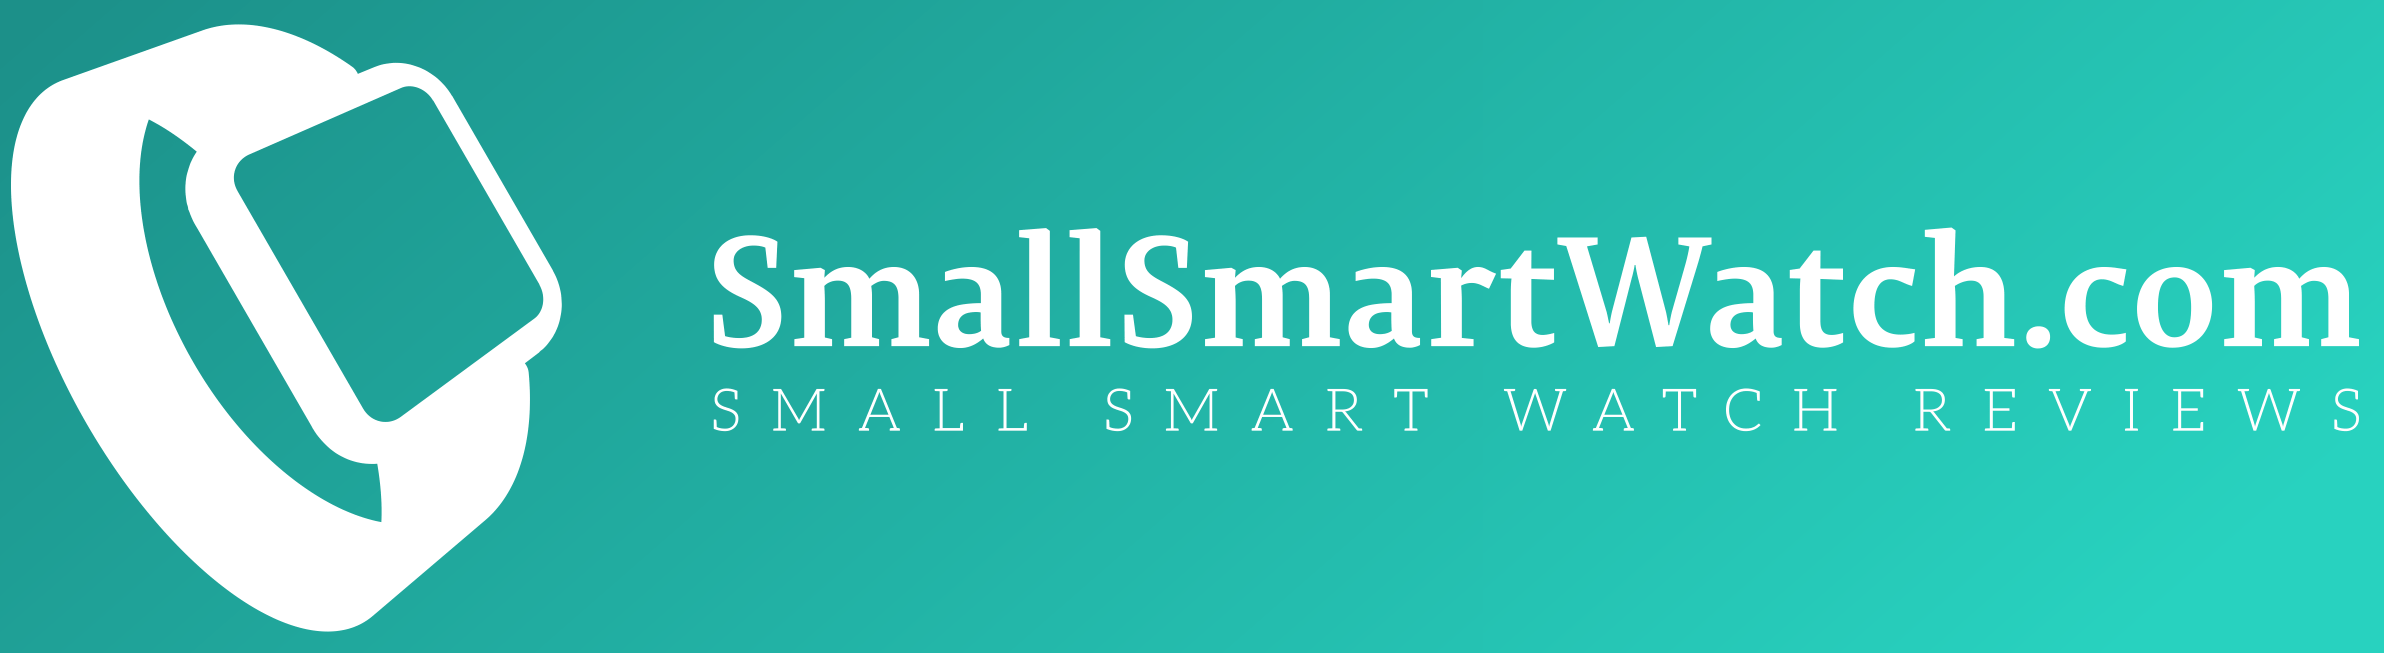 SmallSmartWatch.com